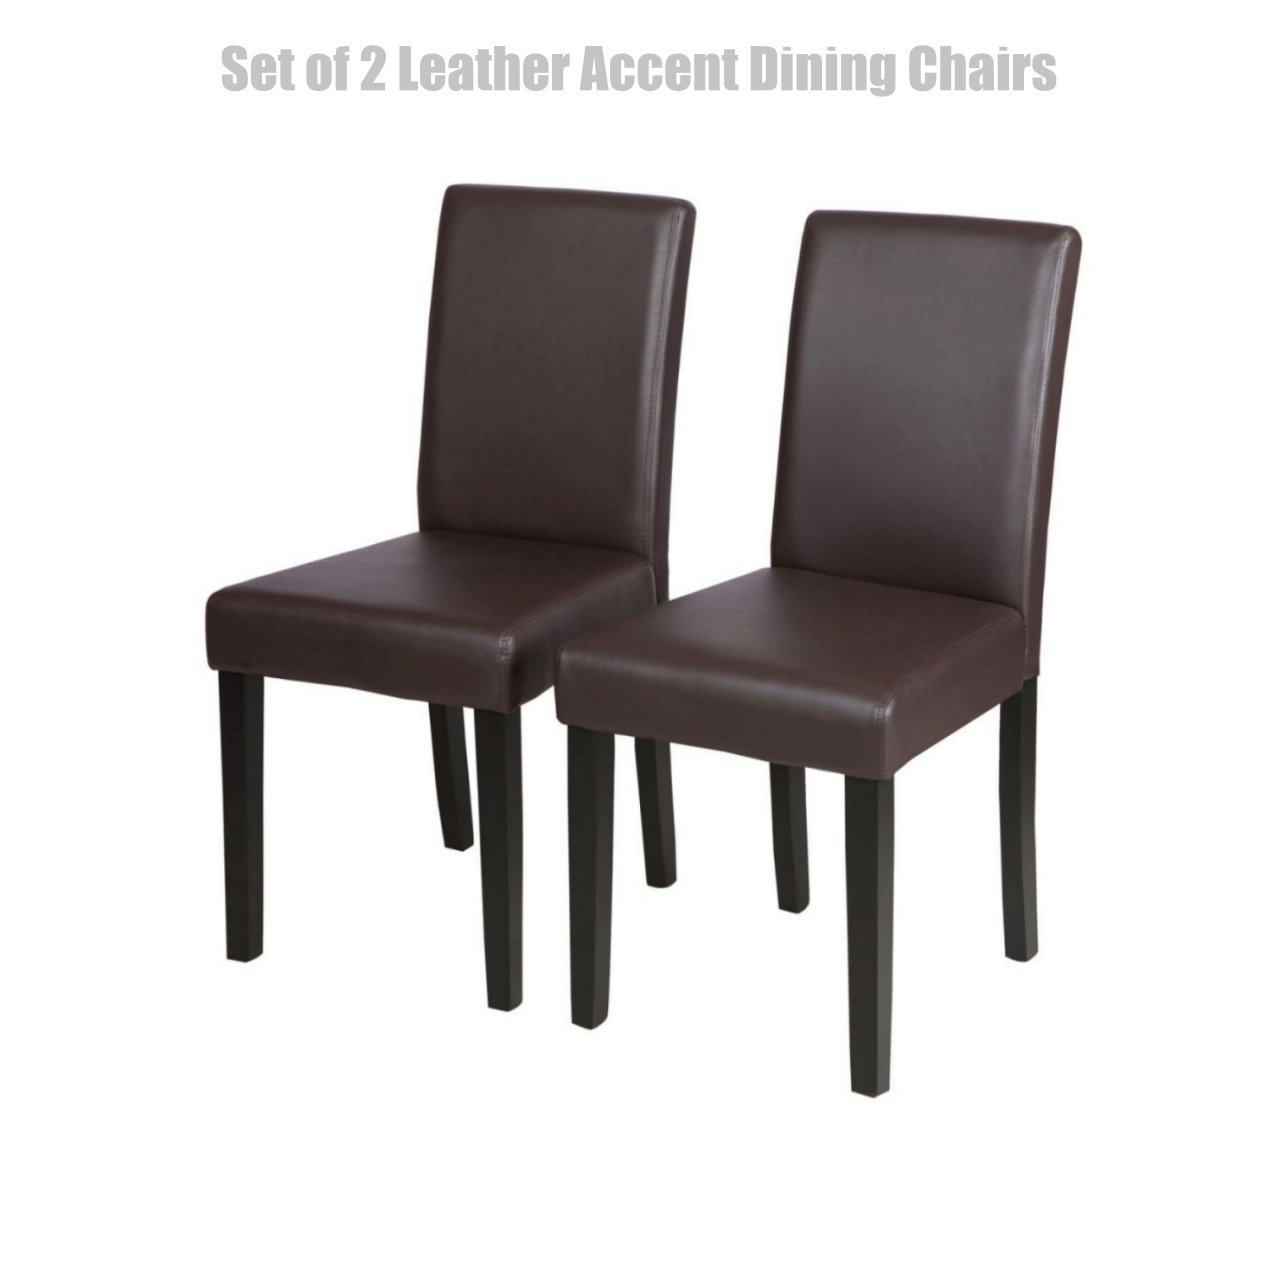 Modern Design Dining Chairs Sturdy Wooden Frame Waterproof Half PU Leather Seat Home Office Furniture Set of 2 Brown #1449a